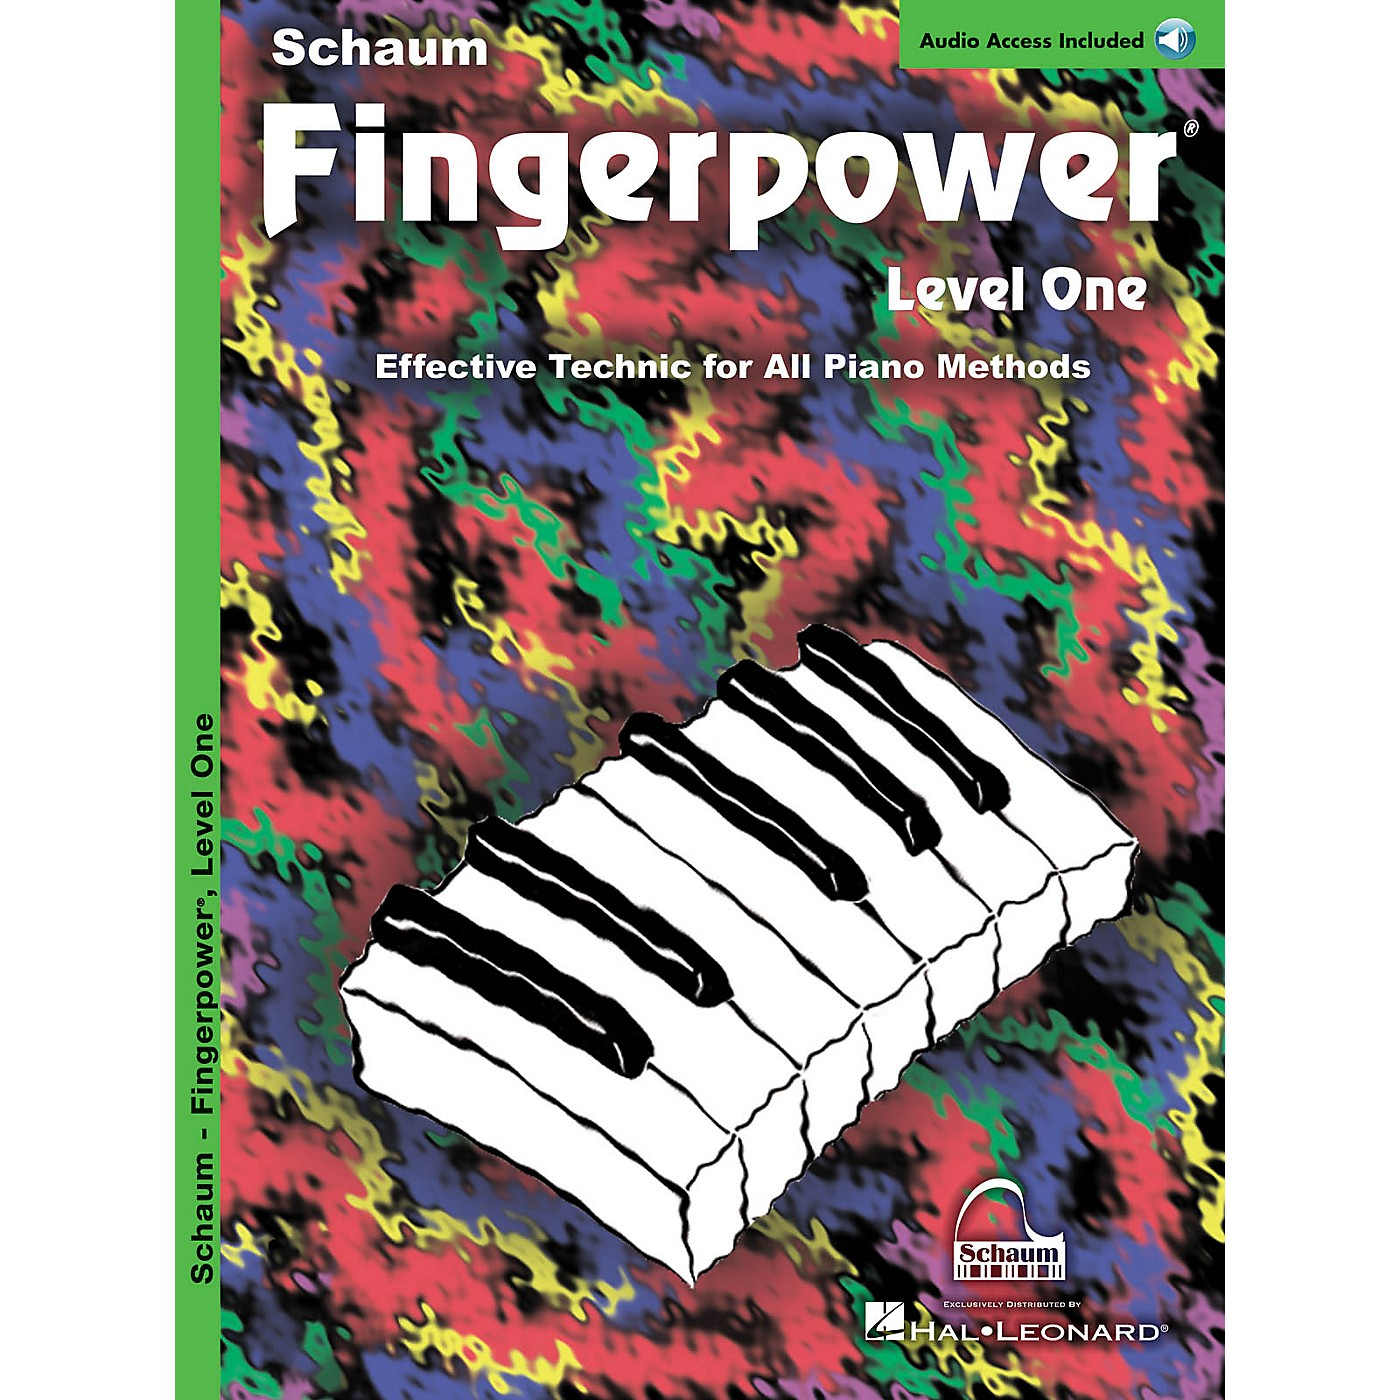 SCHAUM Fingerpower (Level 1 Book/CD Pack) Educational Piano Series Softcover with CD Written by John W. Schaum thumbnail